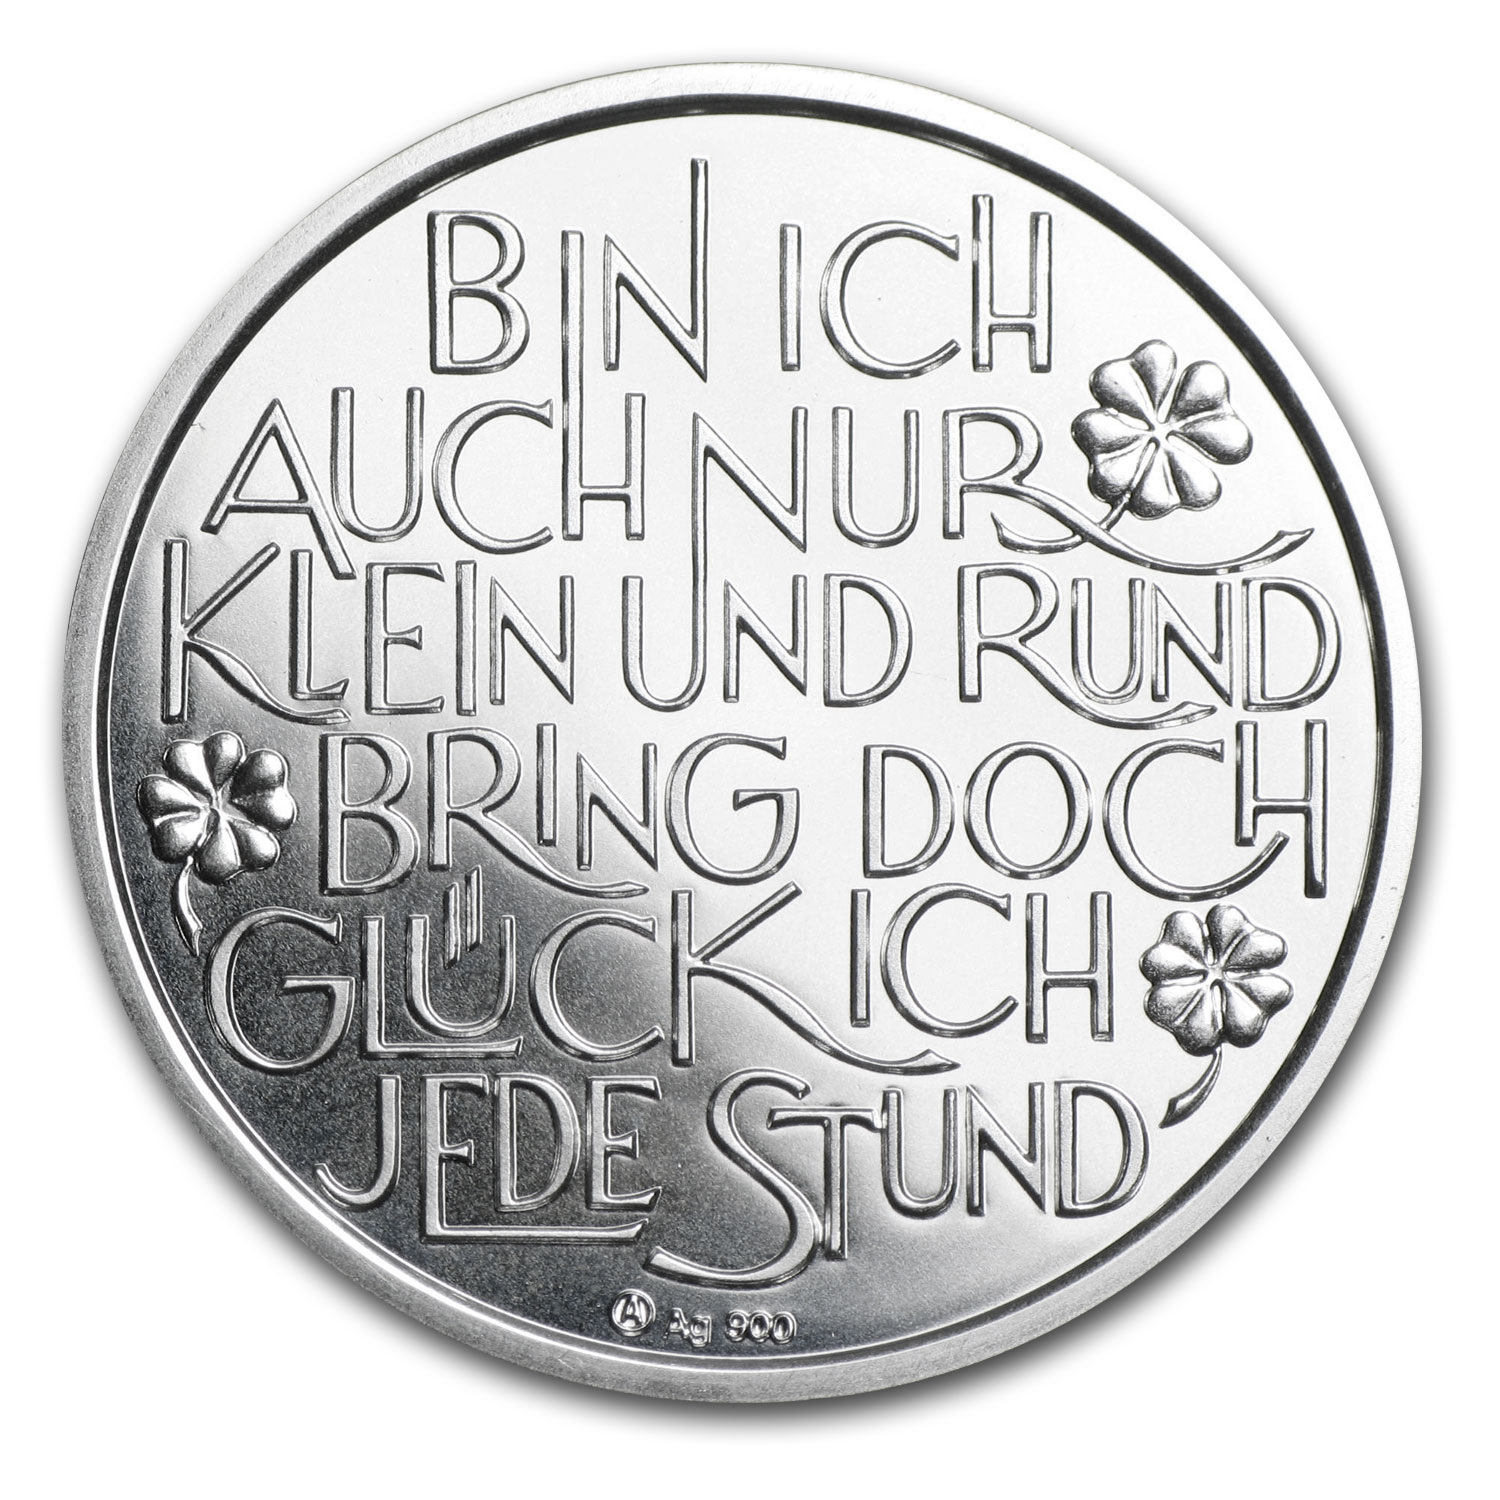 2014 Austria Silver Glücksjeton Proof (Happy New Year)